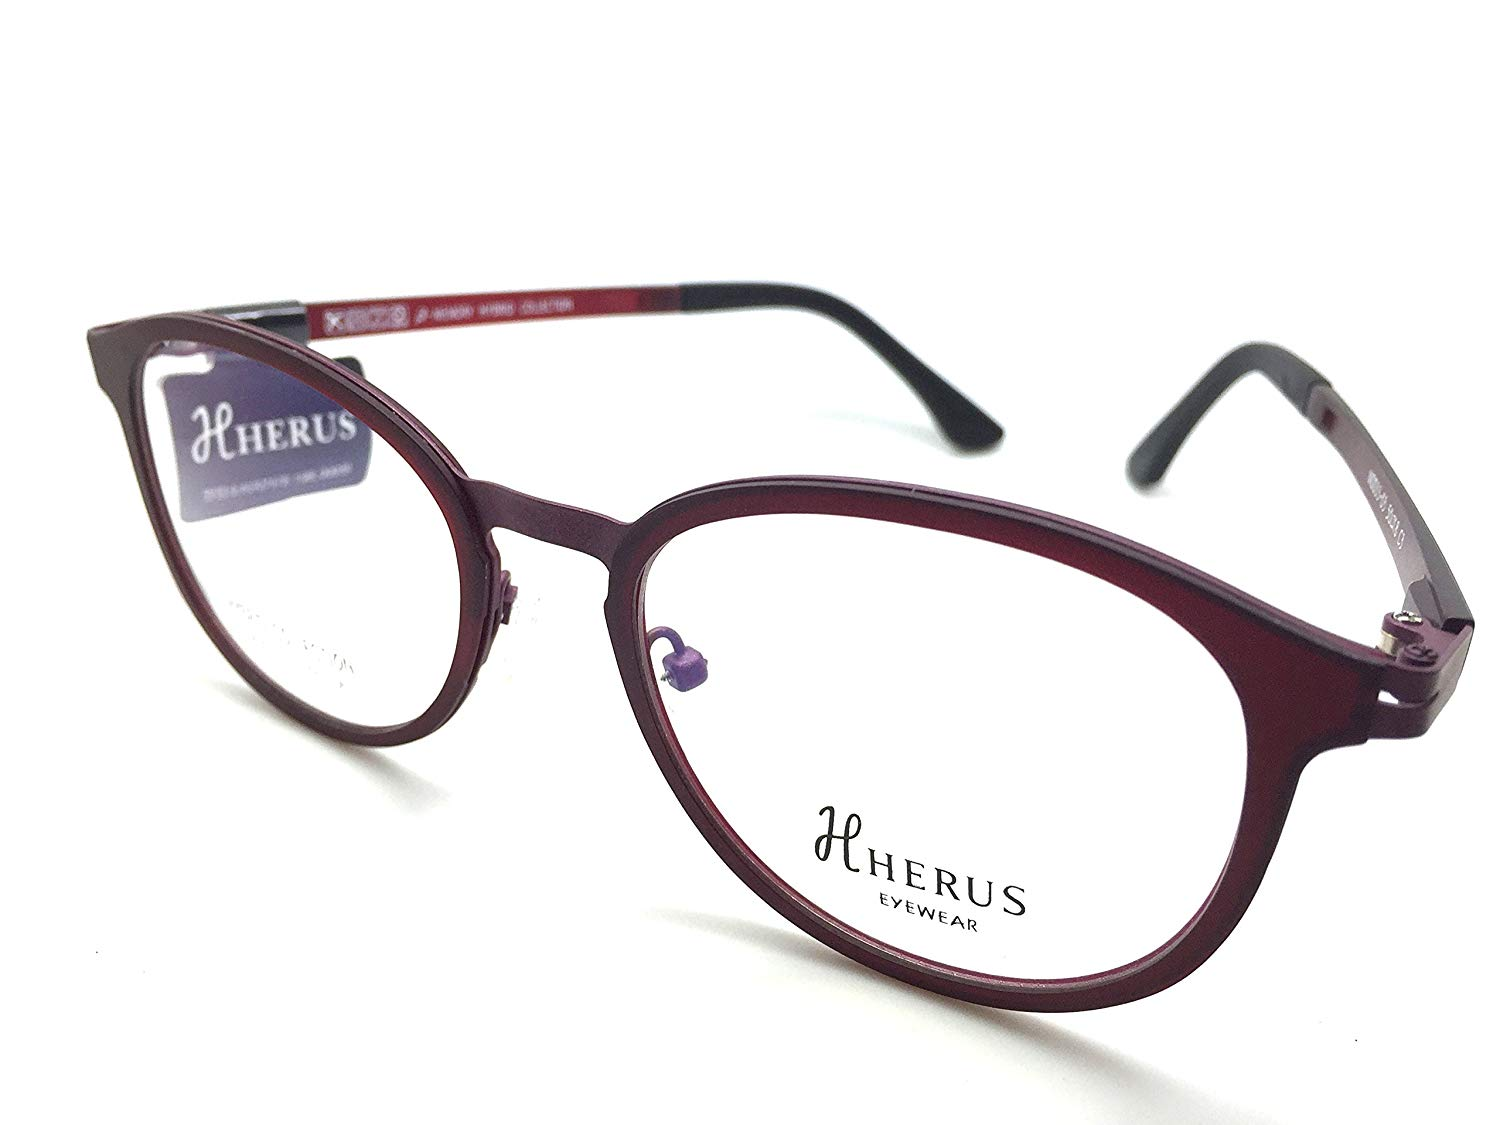 62f21c8a94d4 Get Quotations · Hybrid Collection Prescription Eye Glasses Frame Metal and  Ultem Herus 33-03 C3